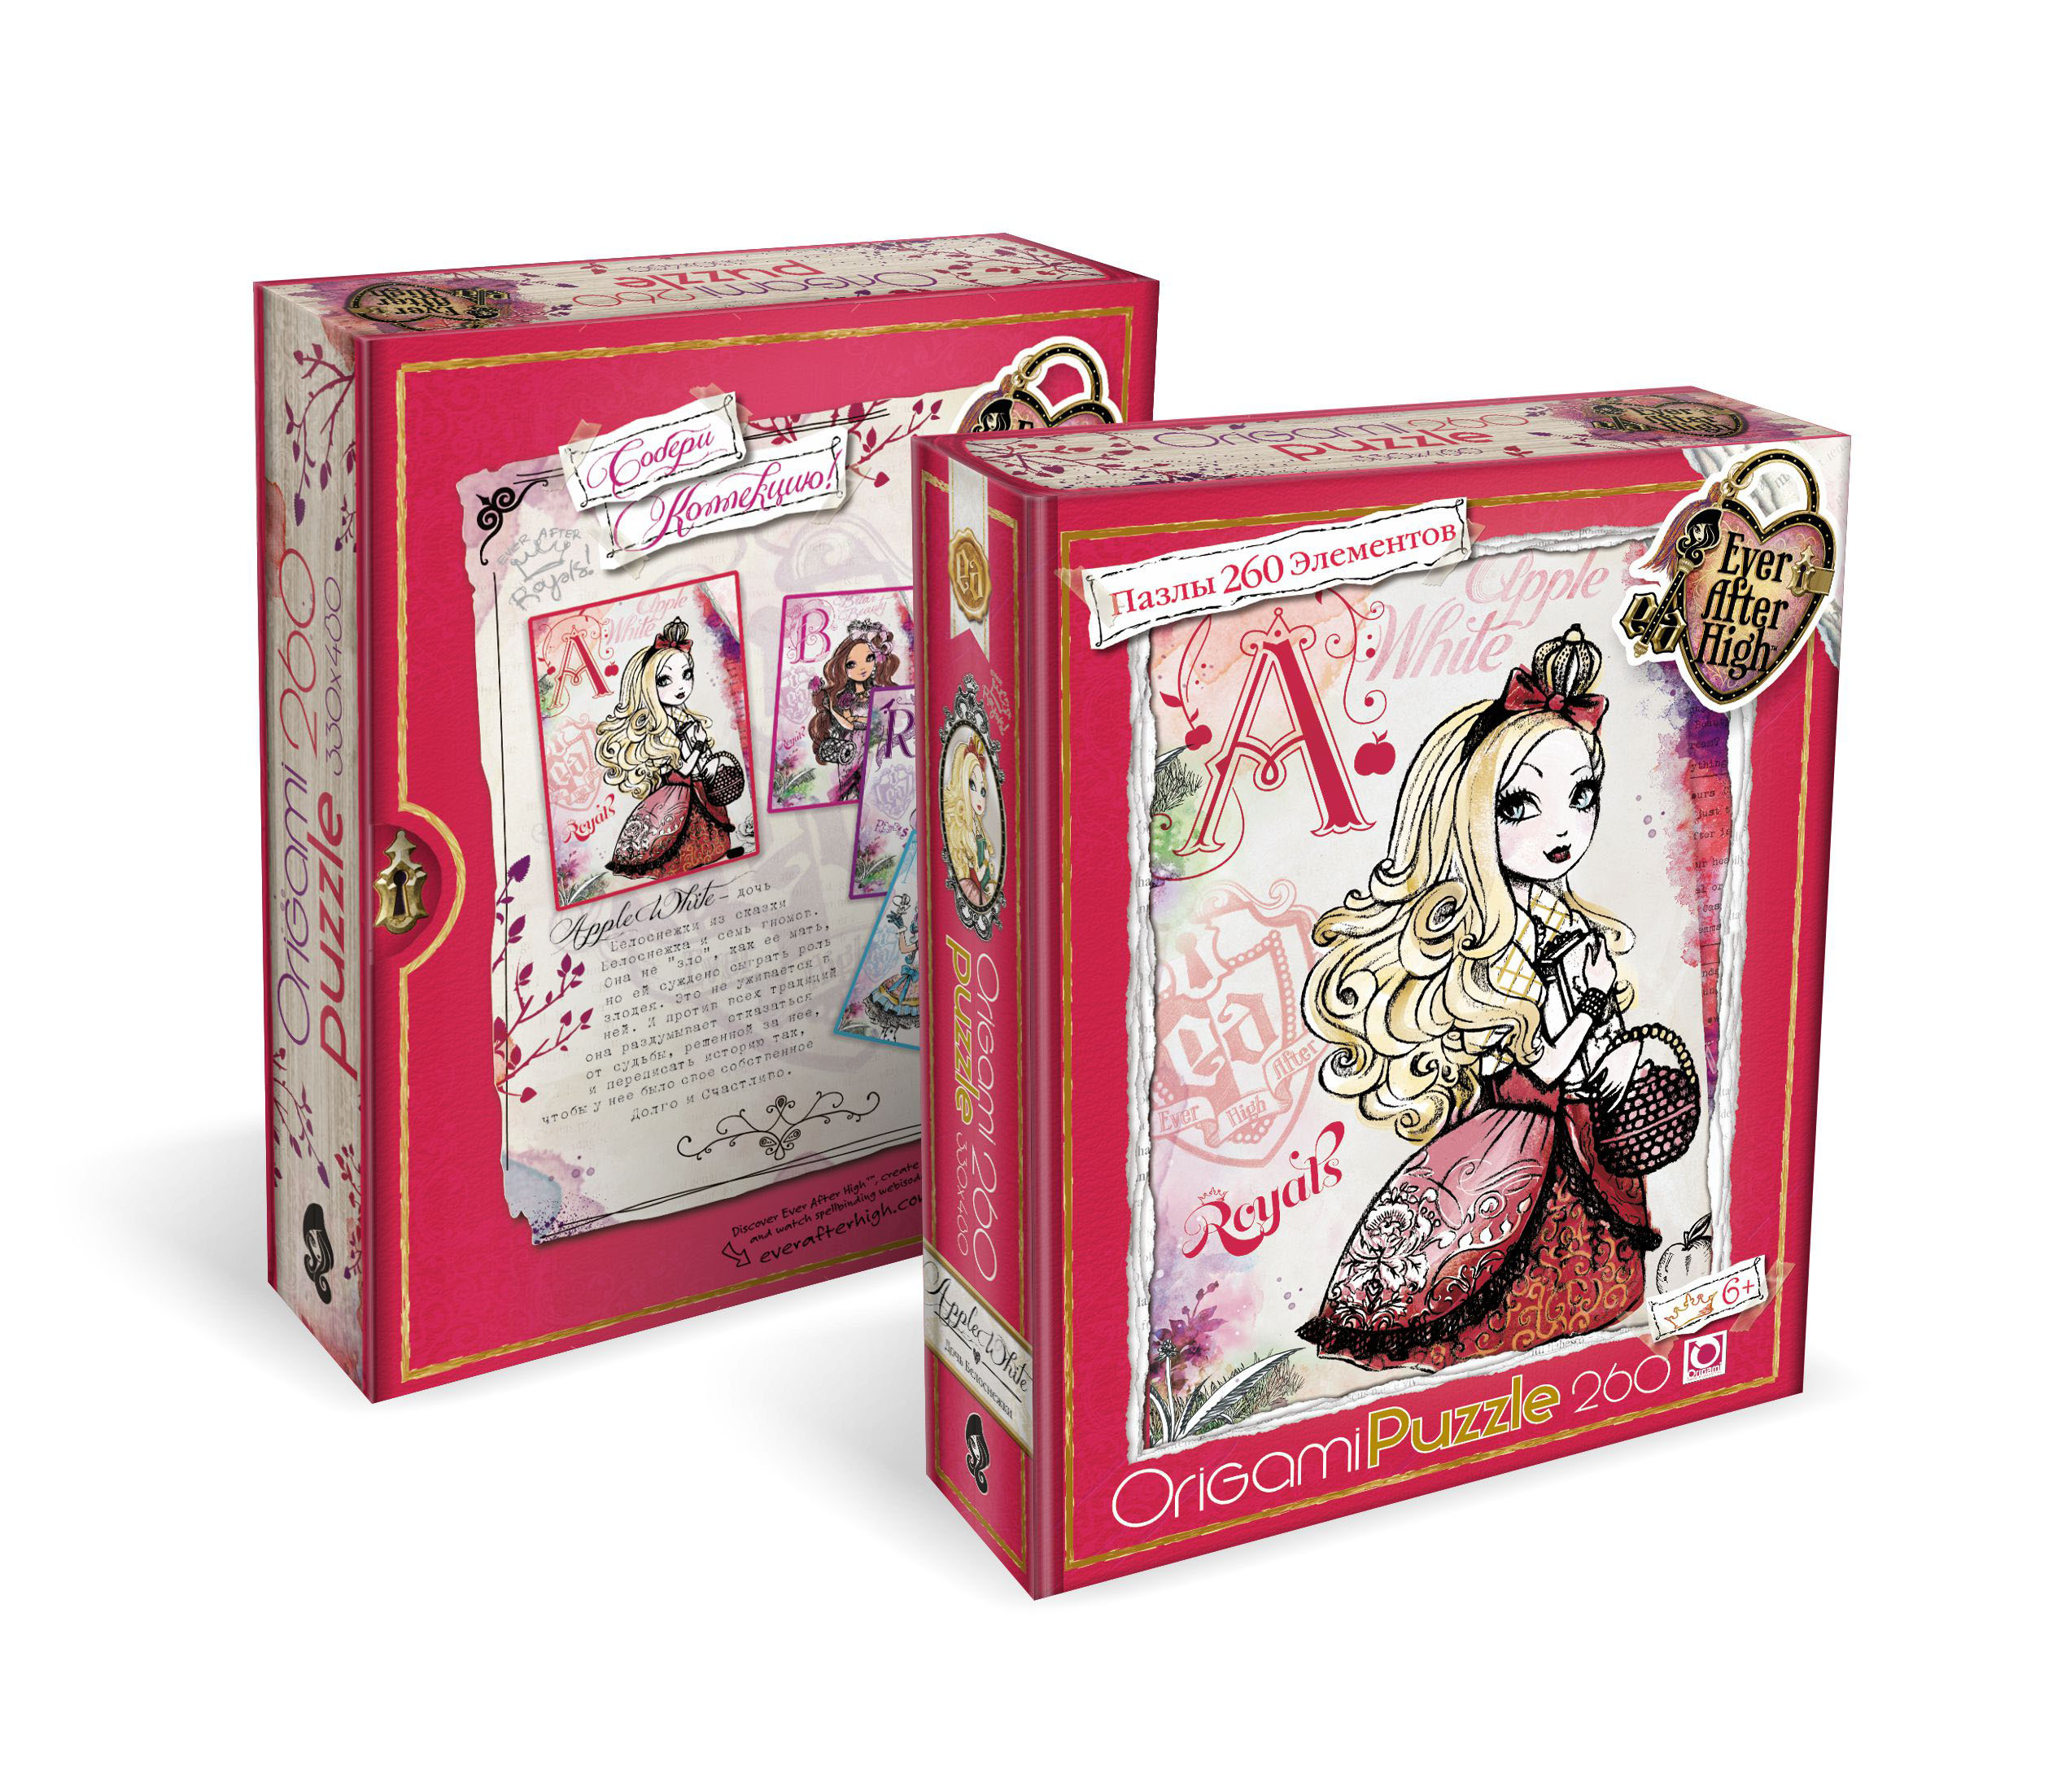 Пазл Ever After High 260 элементовКуклы Ever After High и Monster High<br>Пазл Ever After High 260 элементов<br>